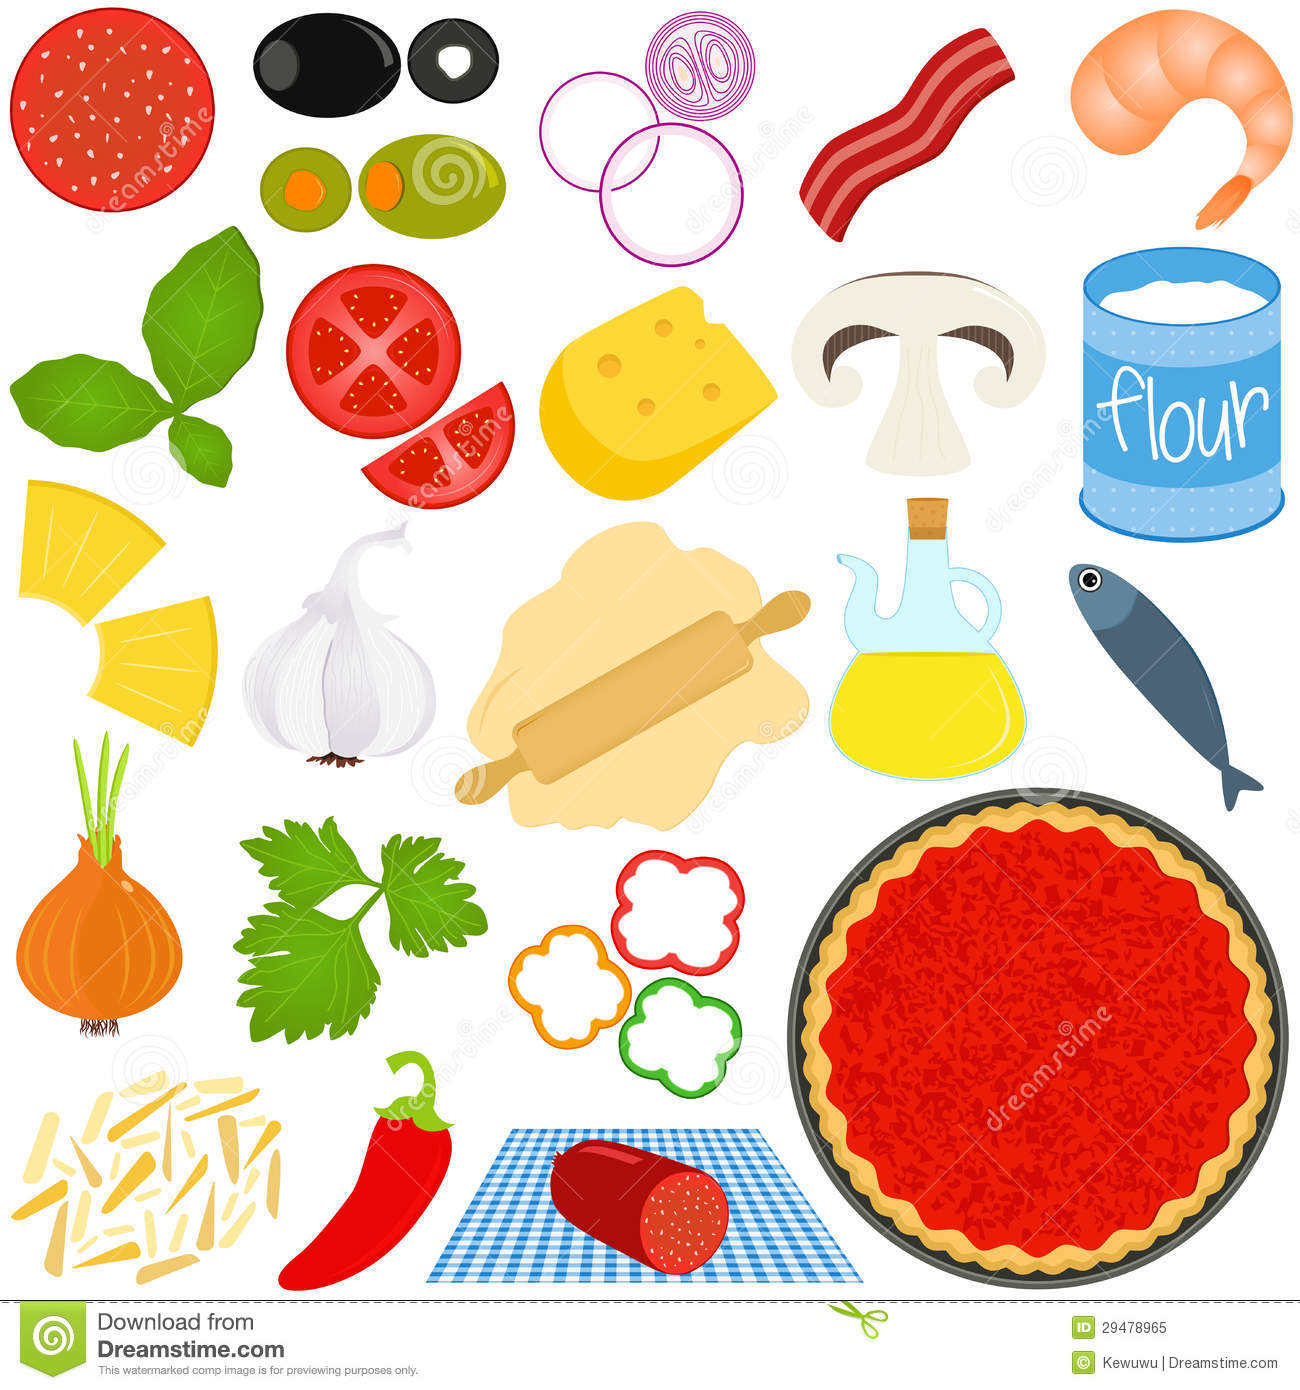 Pizza Toppings Clipart Ingredients To Make Pizza